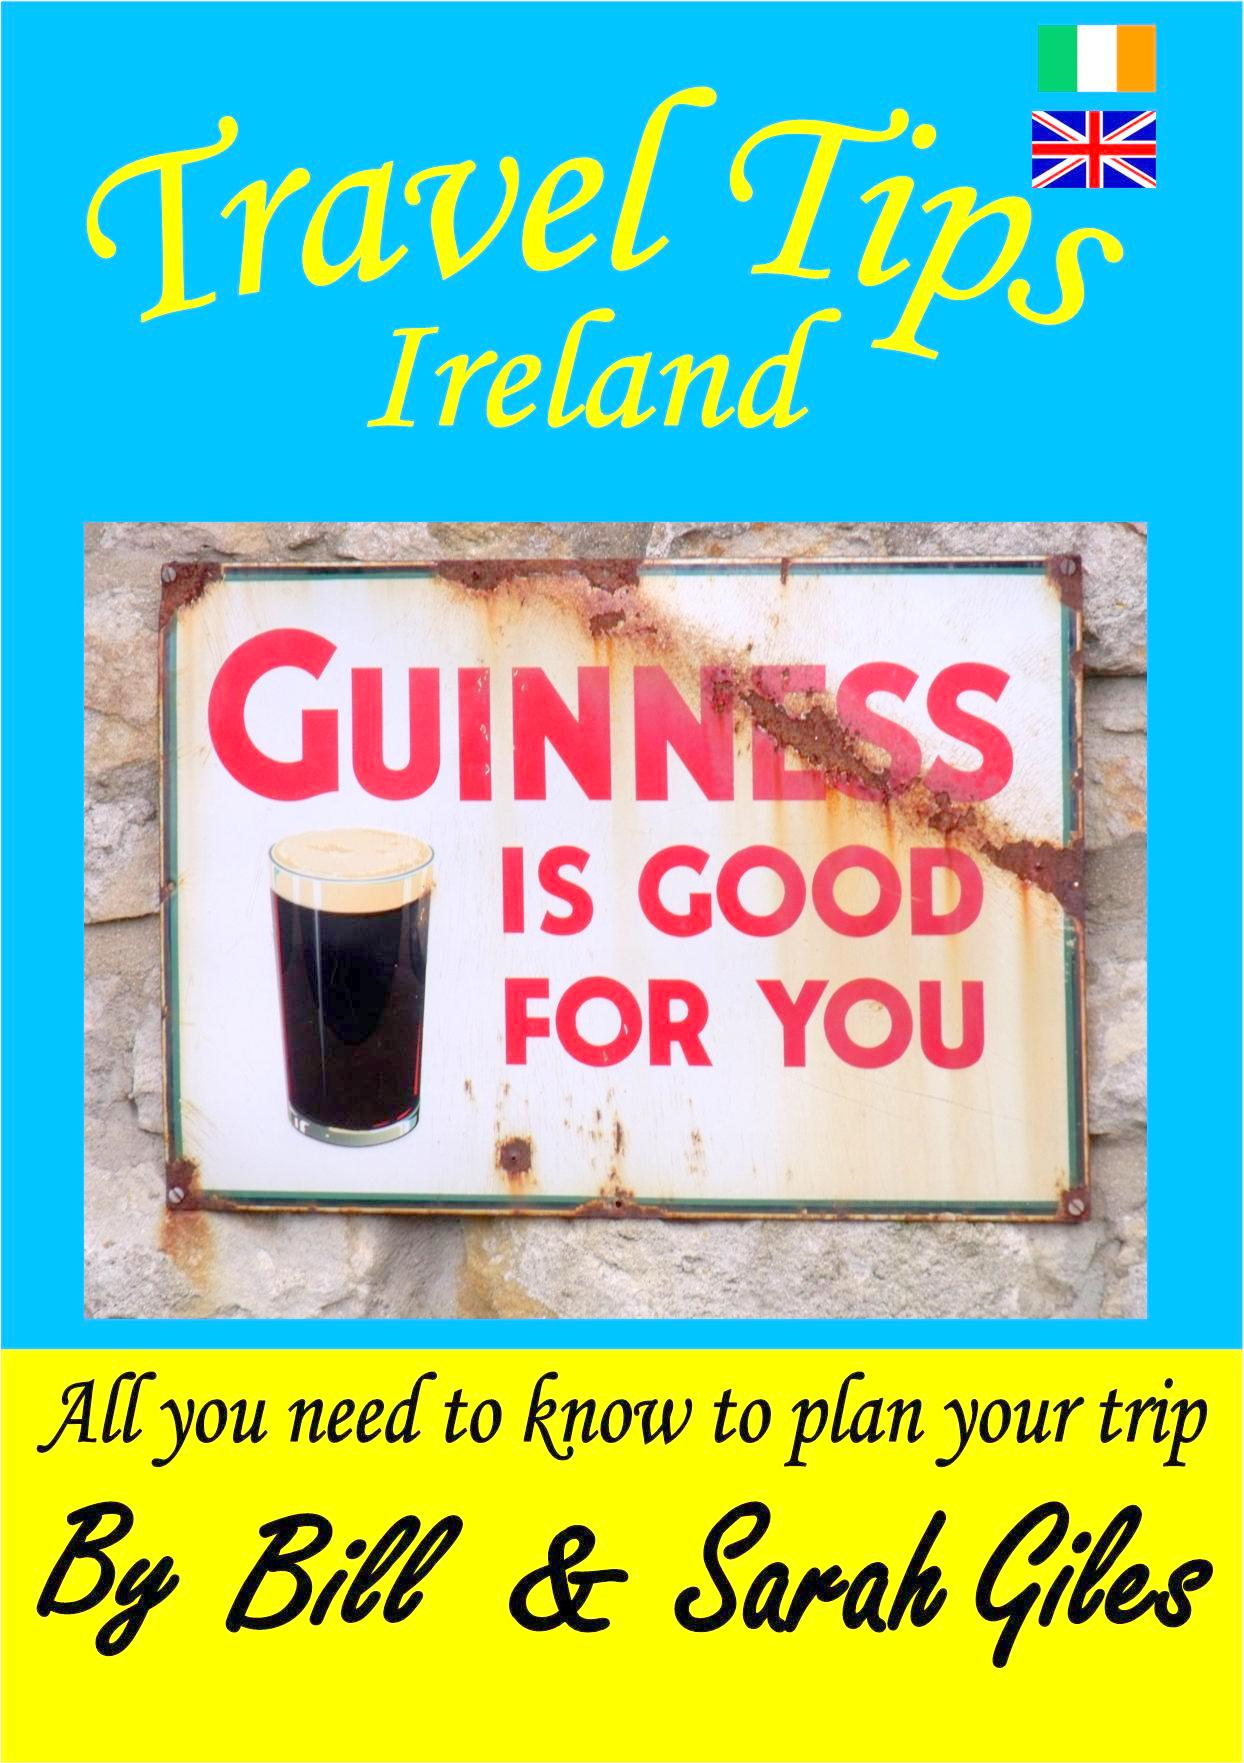 Travel Tips Ireland. A Bill and Sarah Giles concise, introductory travel guide to Ireland.